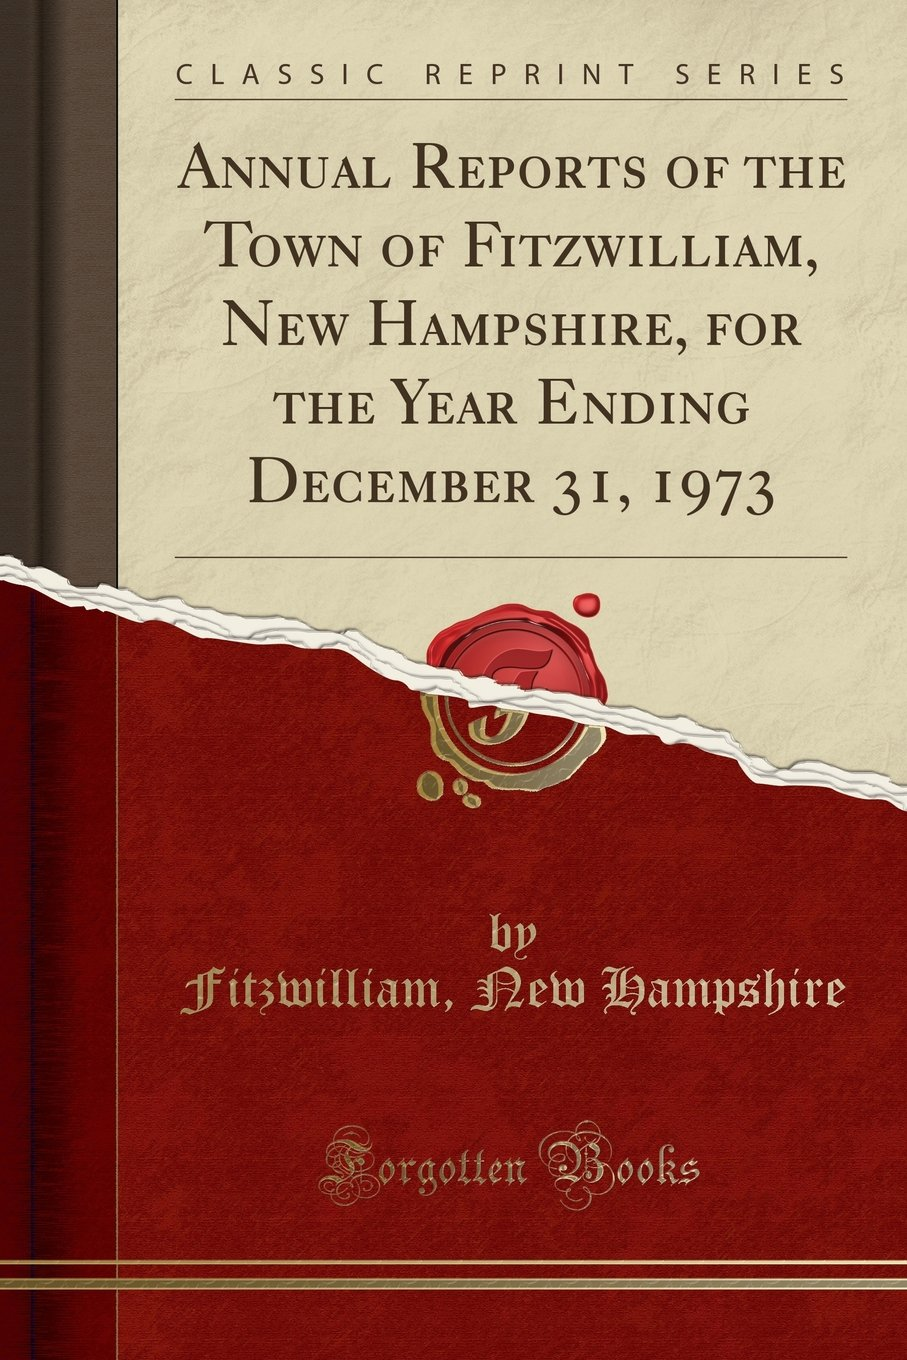 Annual Reports of the Town of Fitzwilliam, New Hampshire, for the Year Ending December 31, 1973 (Classic Reprint) pdf